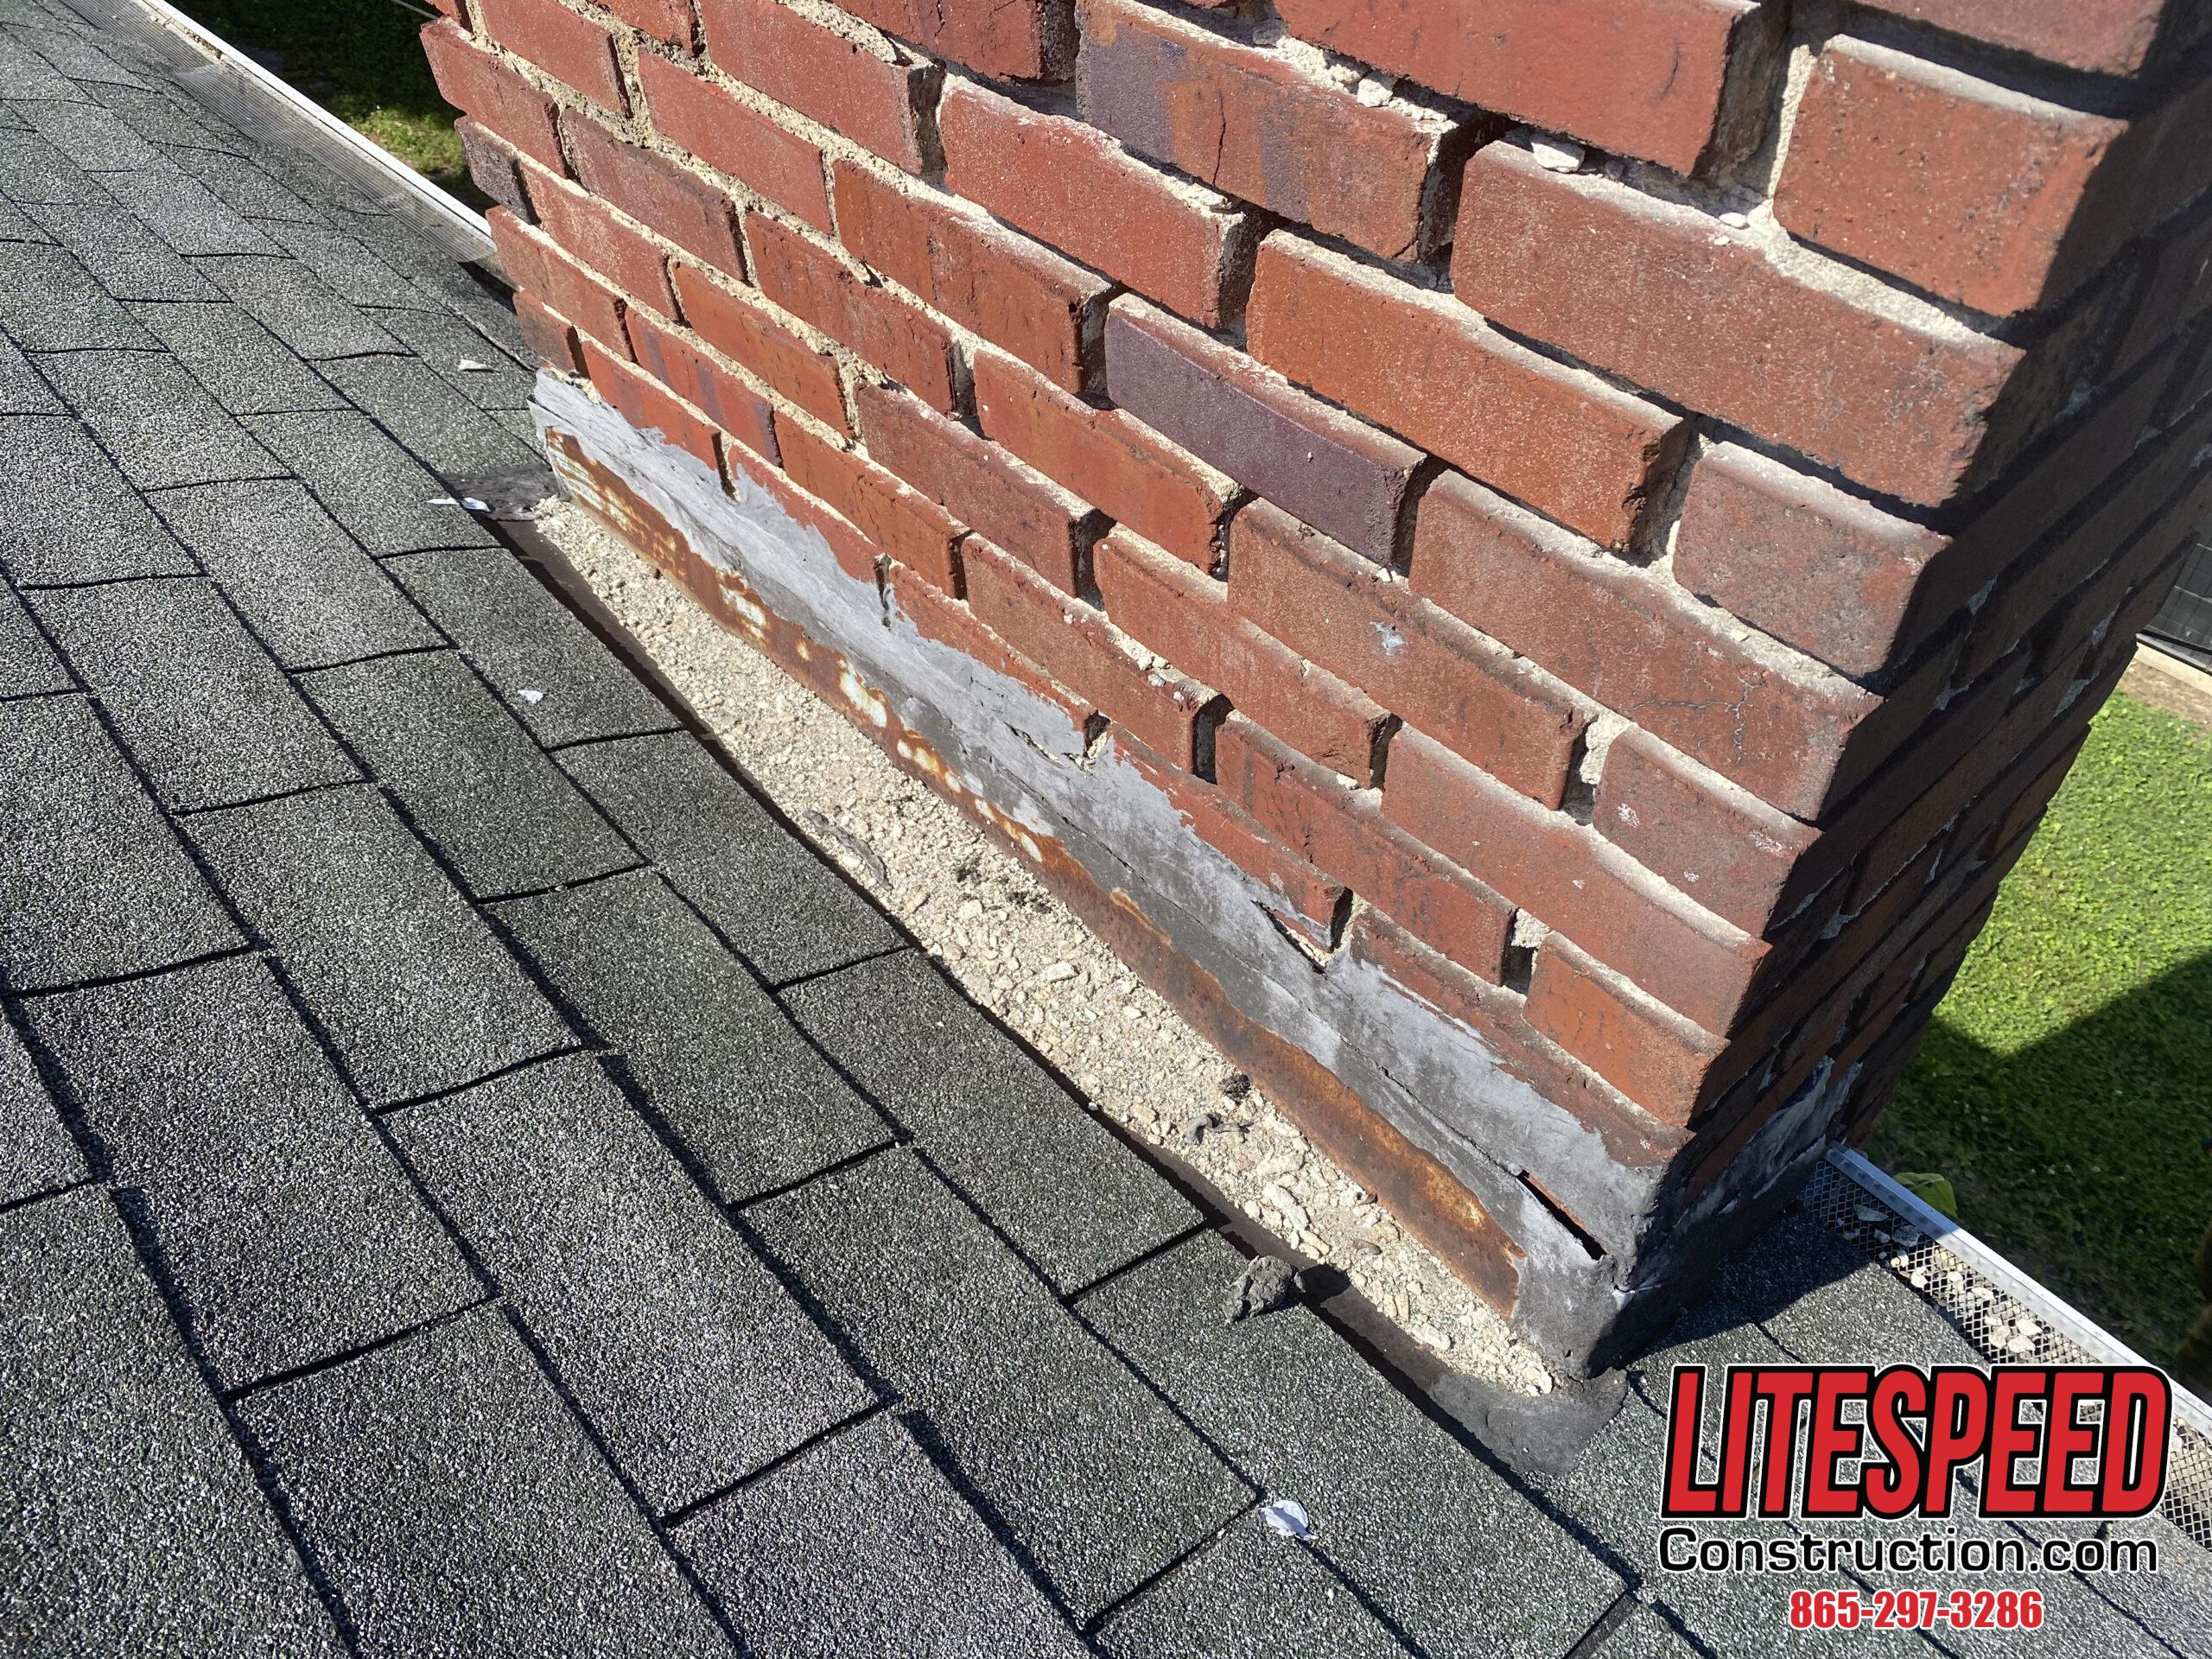 This is a picture of a brick  chimney with bad flashing at the roof